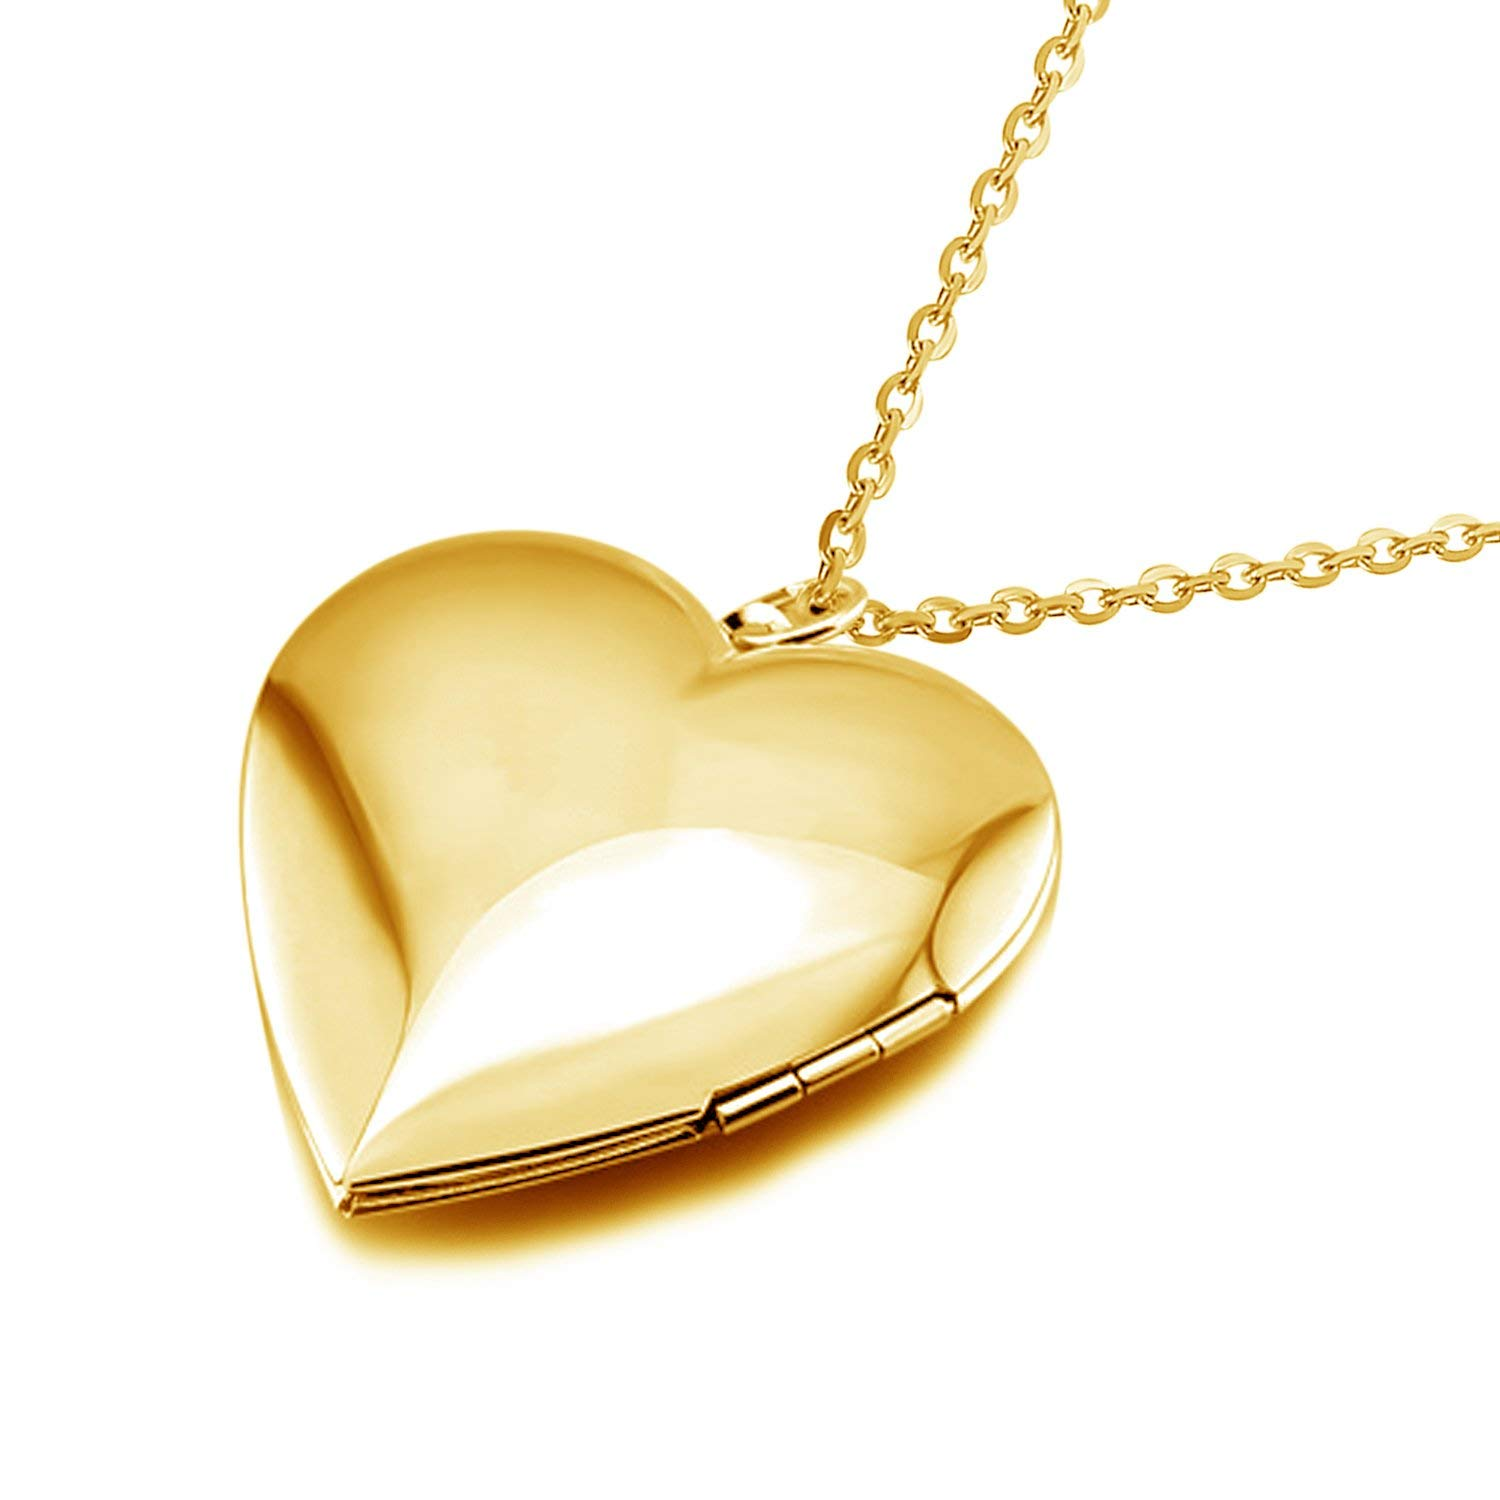 69cc3727910 Get Quotations · YOUFENG Polished Heart Locket Pendant Necklace Engraved  Love Memories Photo Locket Pendant with 18+5